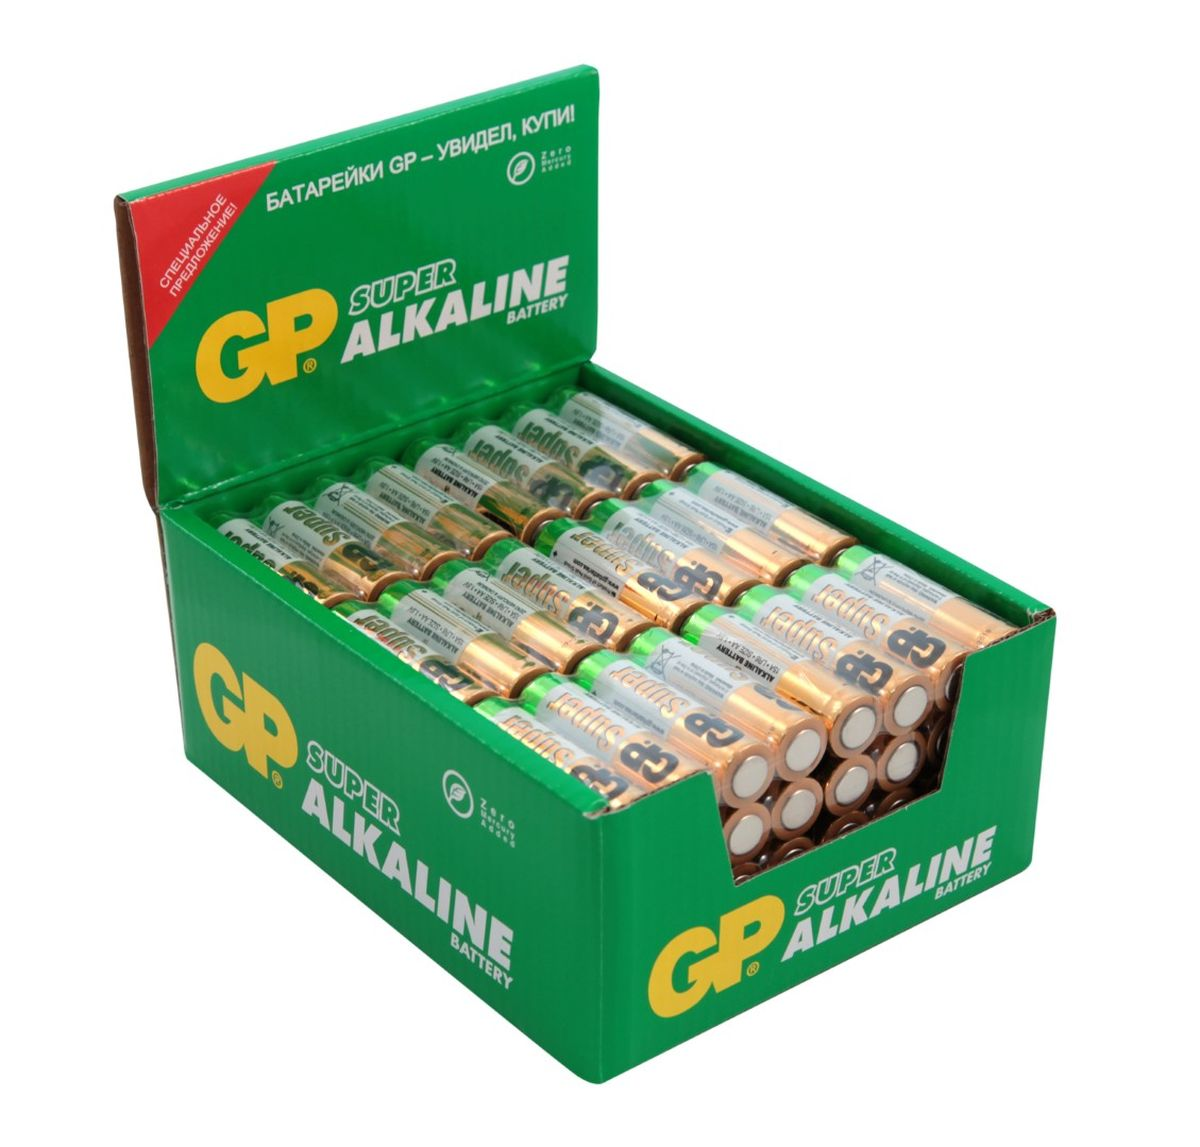 Батарейка алкалиновая GP Batteries Super Alkaline, тип АА, 96 шт батарейка алкалиновая gp batteries super alkaline тип аа 96 шт